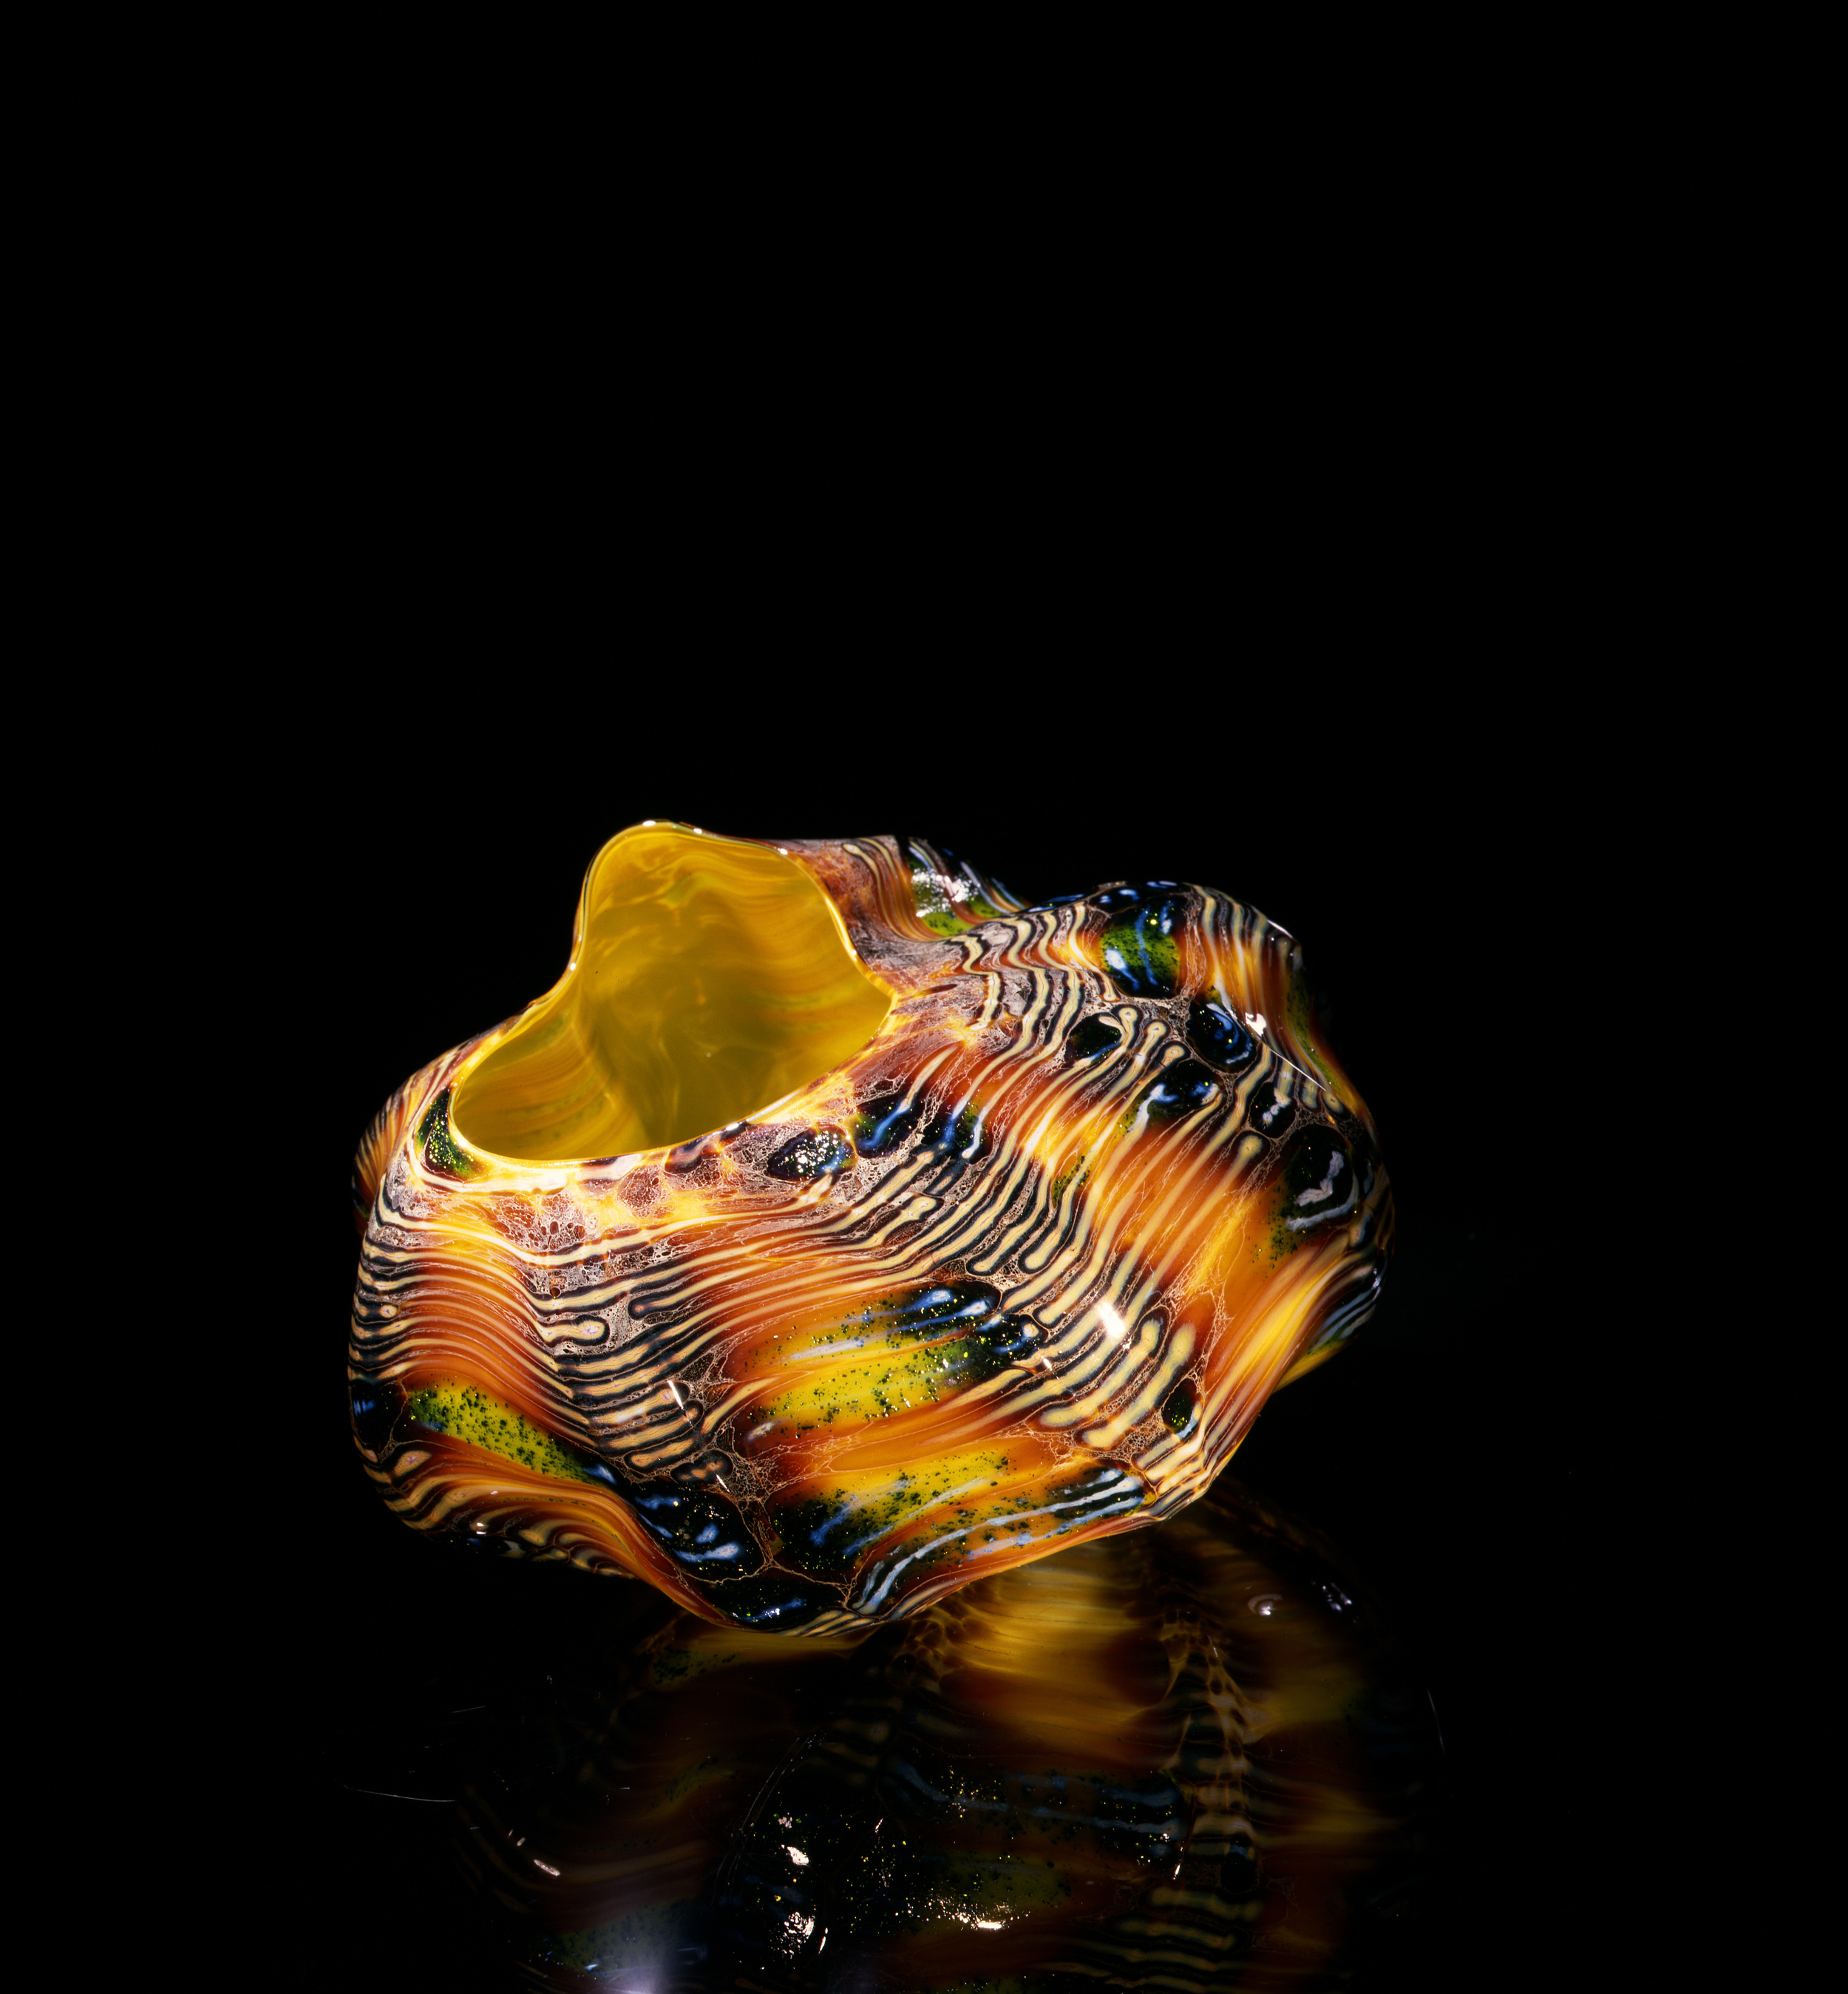 Dale Chihuly, Cadmium Yellow Macchia with Oxblood and Cobalt Patterns (1982, glass, 4 x 6 x 6inches), DC.59